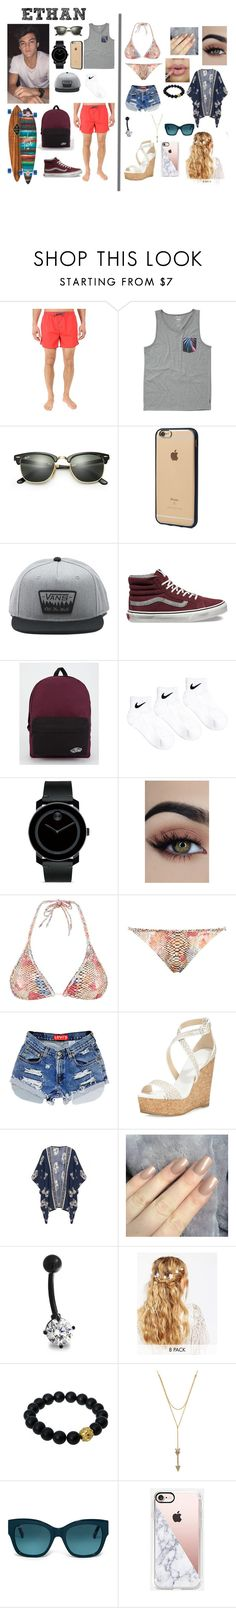 """Untitled #243"" by brie-karitsa-luciano on Polyvore featuring Dolan, BOSS Hugo Boss, Billabong, Ray-Ban, Incase, Vans, NIKE, Movado, Lazul and Jimmy Choo"